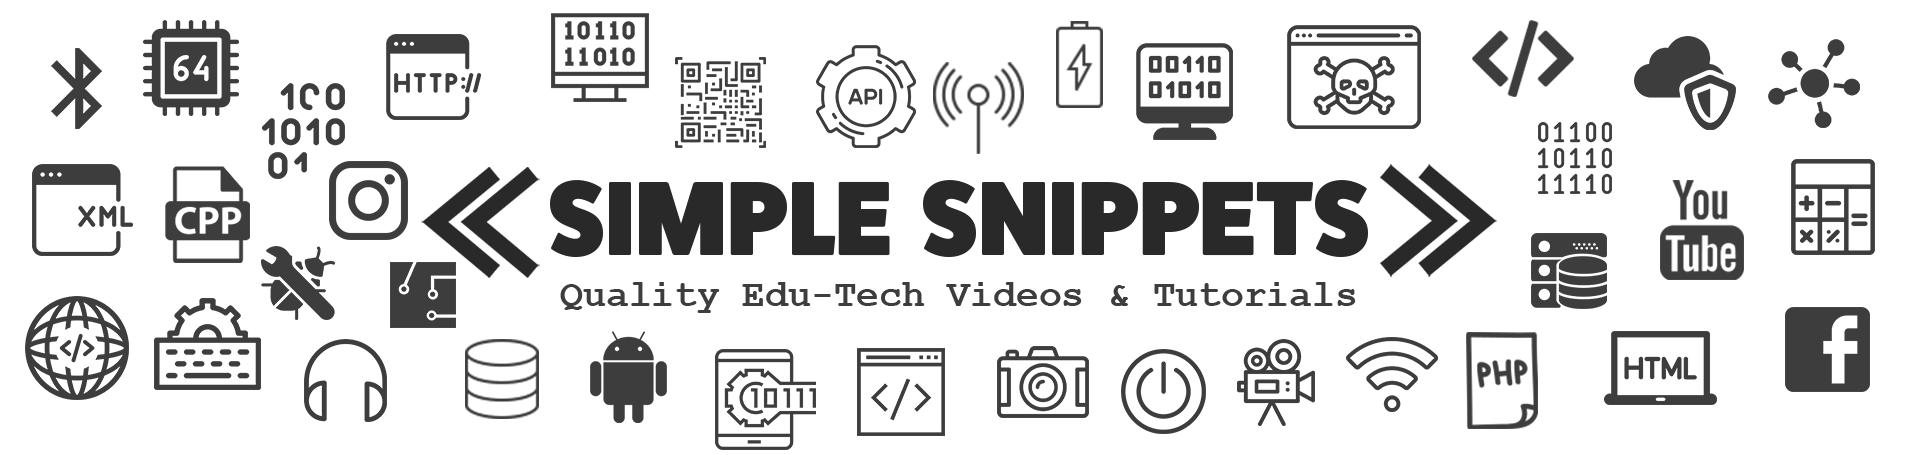 Simple Snippets